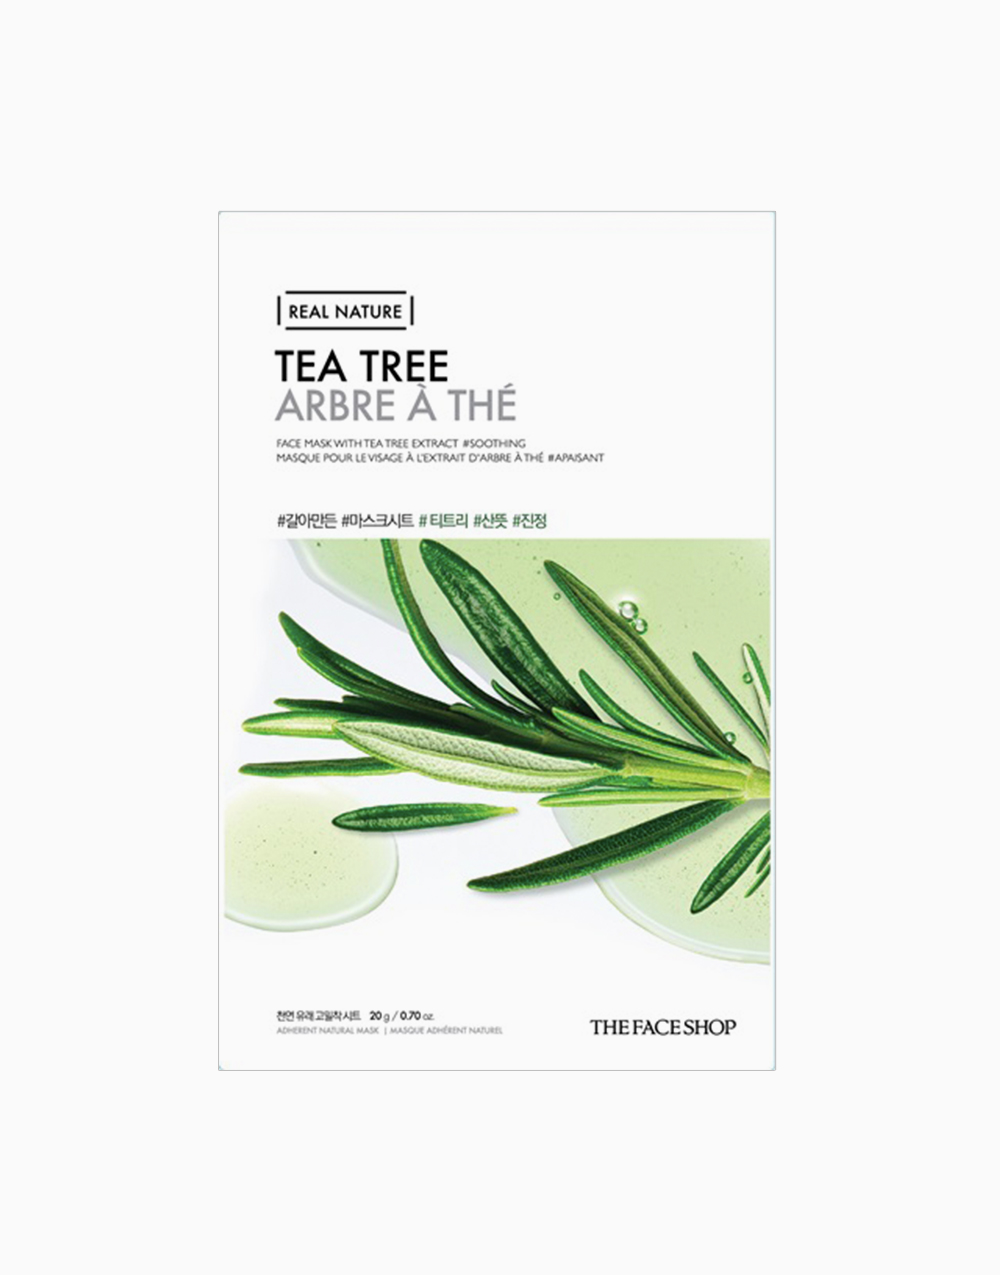 Real Nature Tea Tree Face Mask by The Face Shop